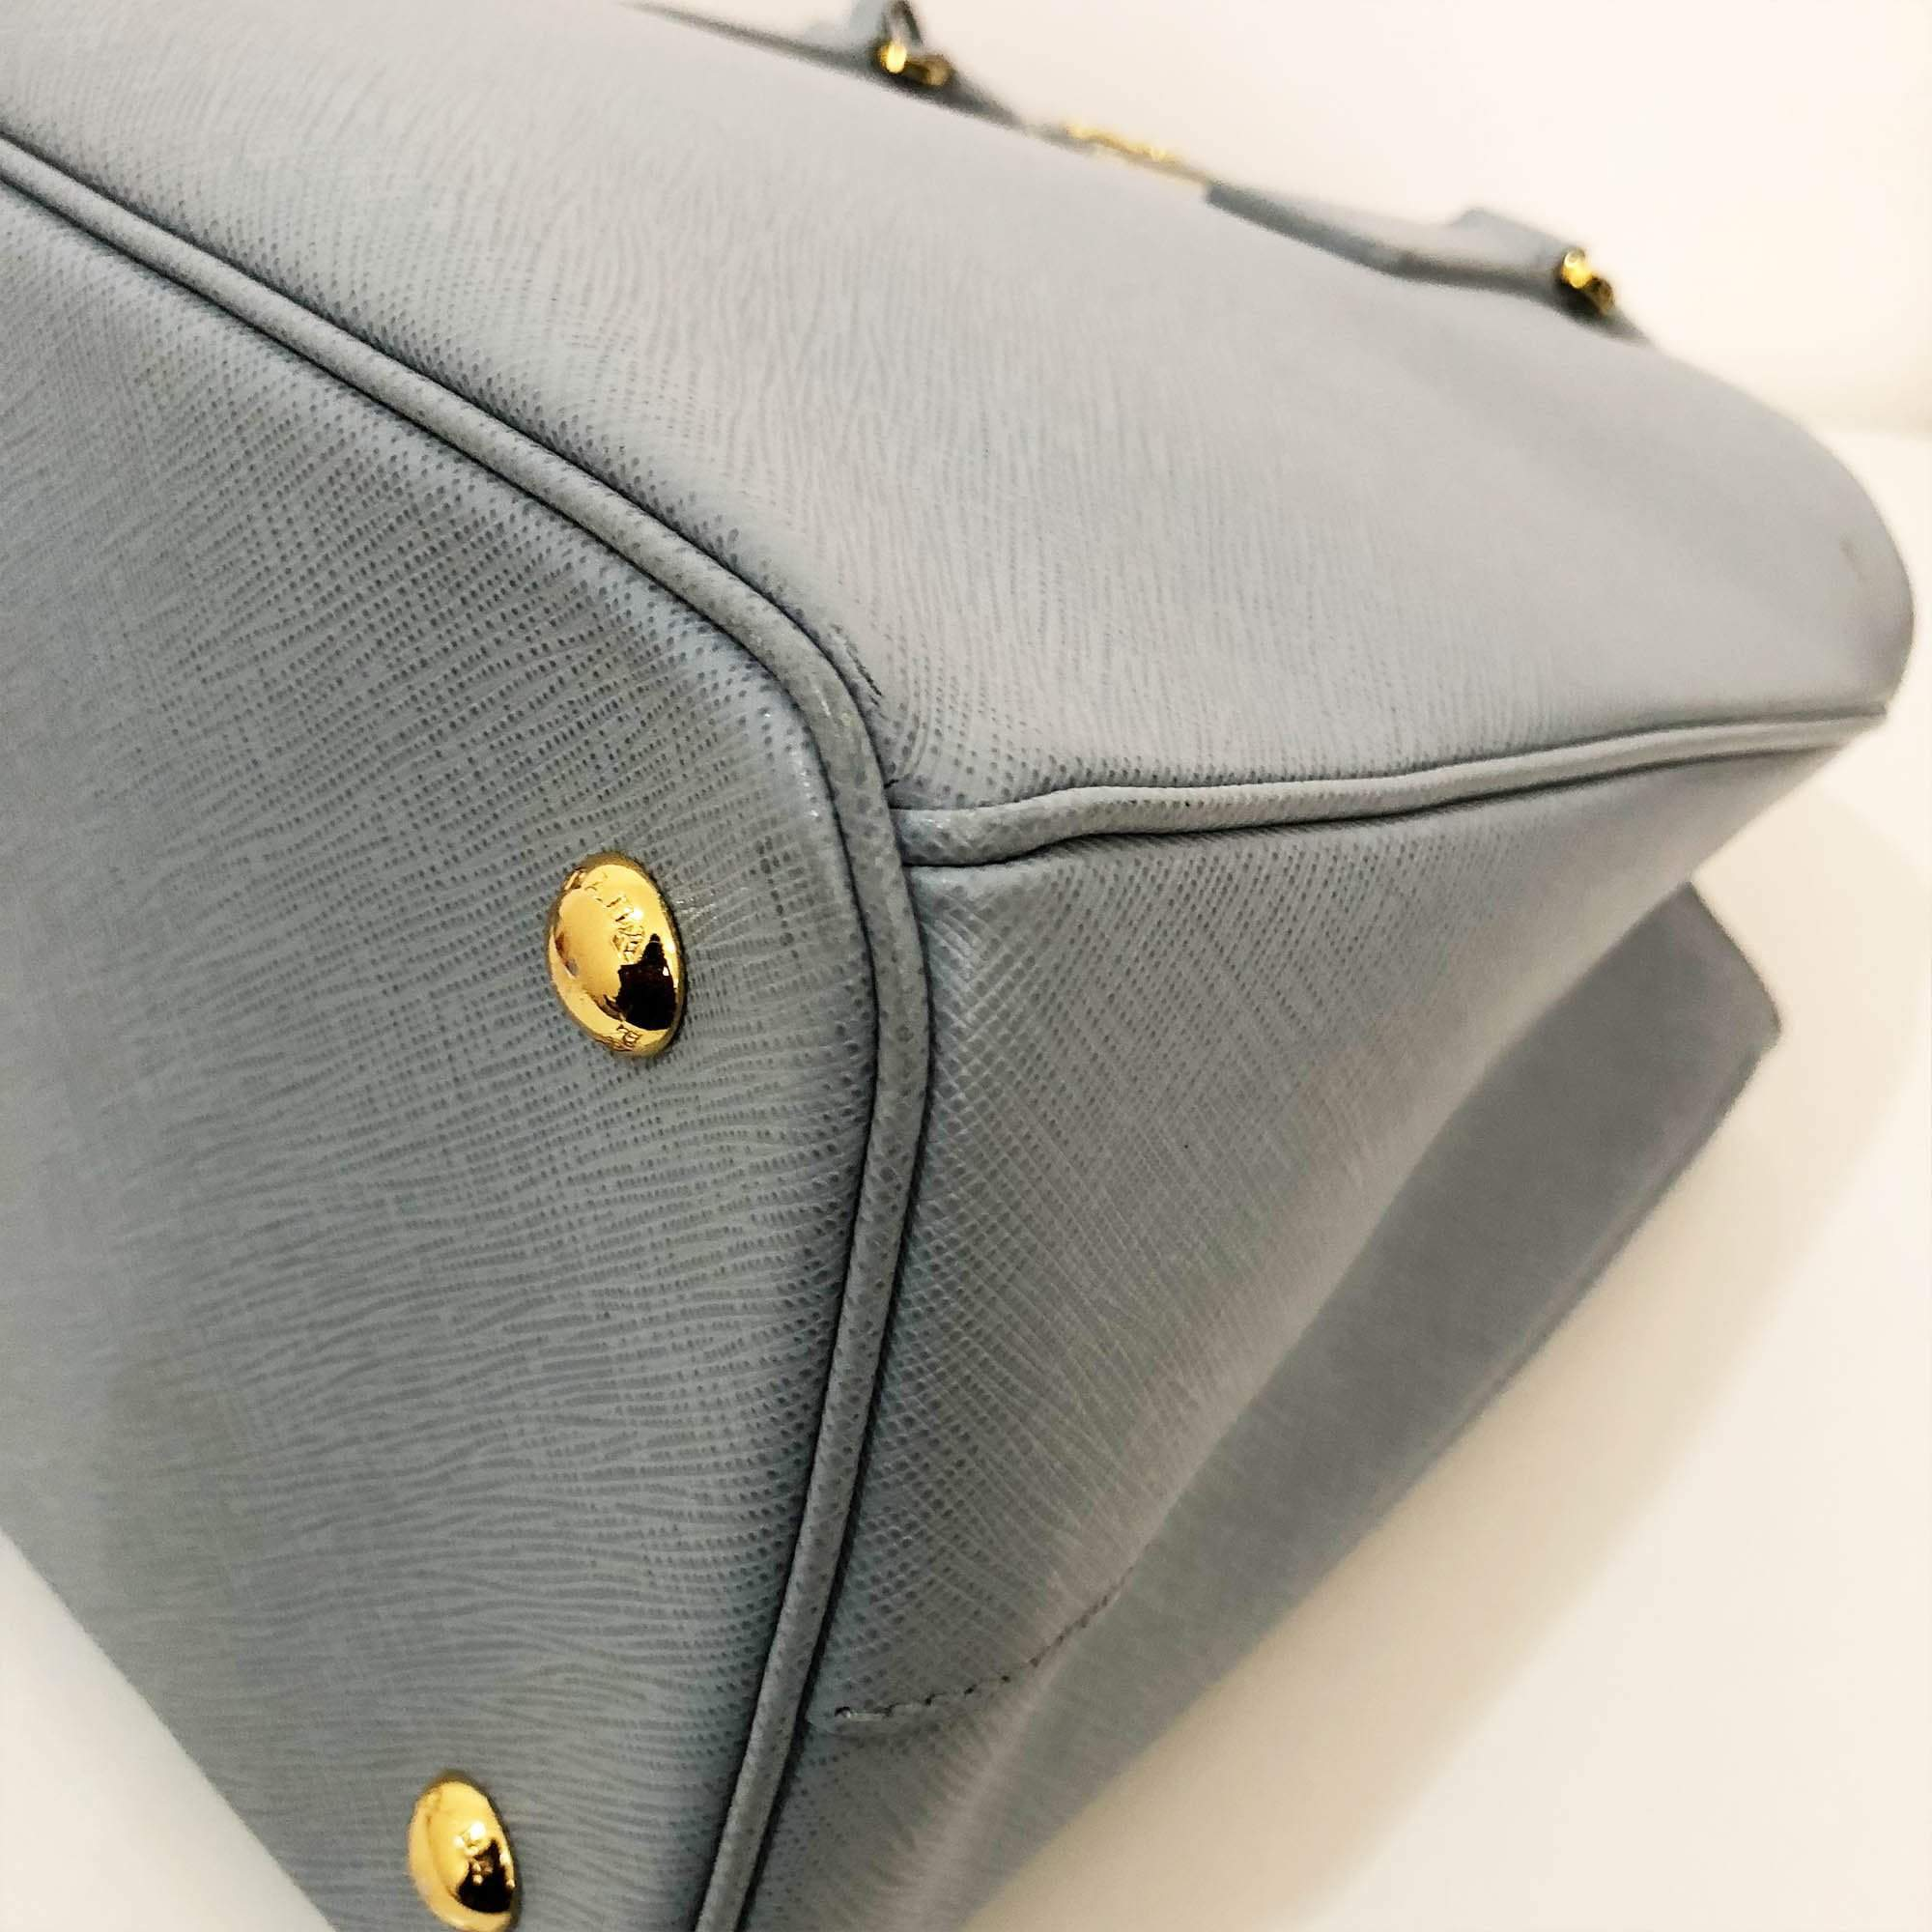 Prada Saffiano Light Blue Bag